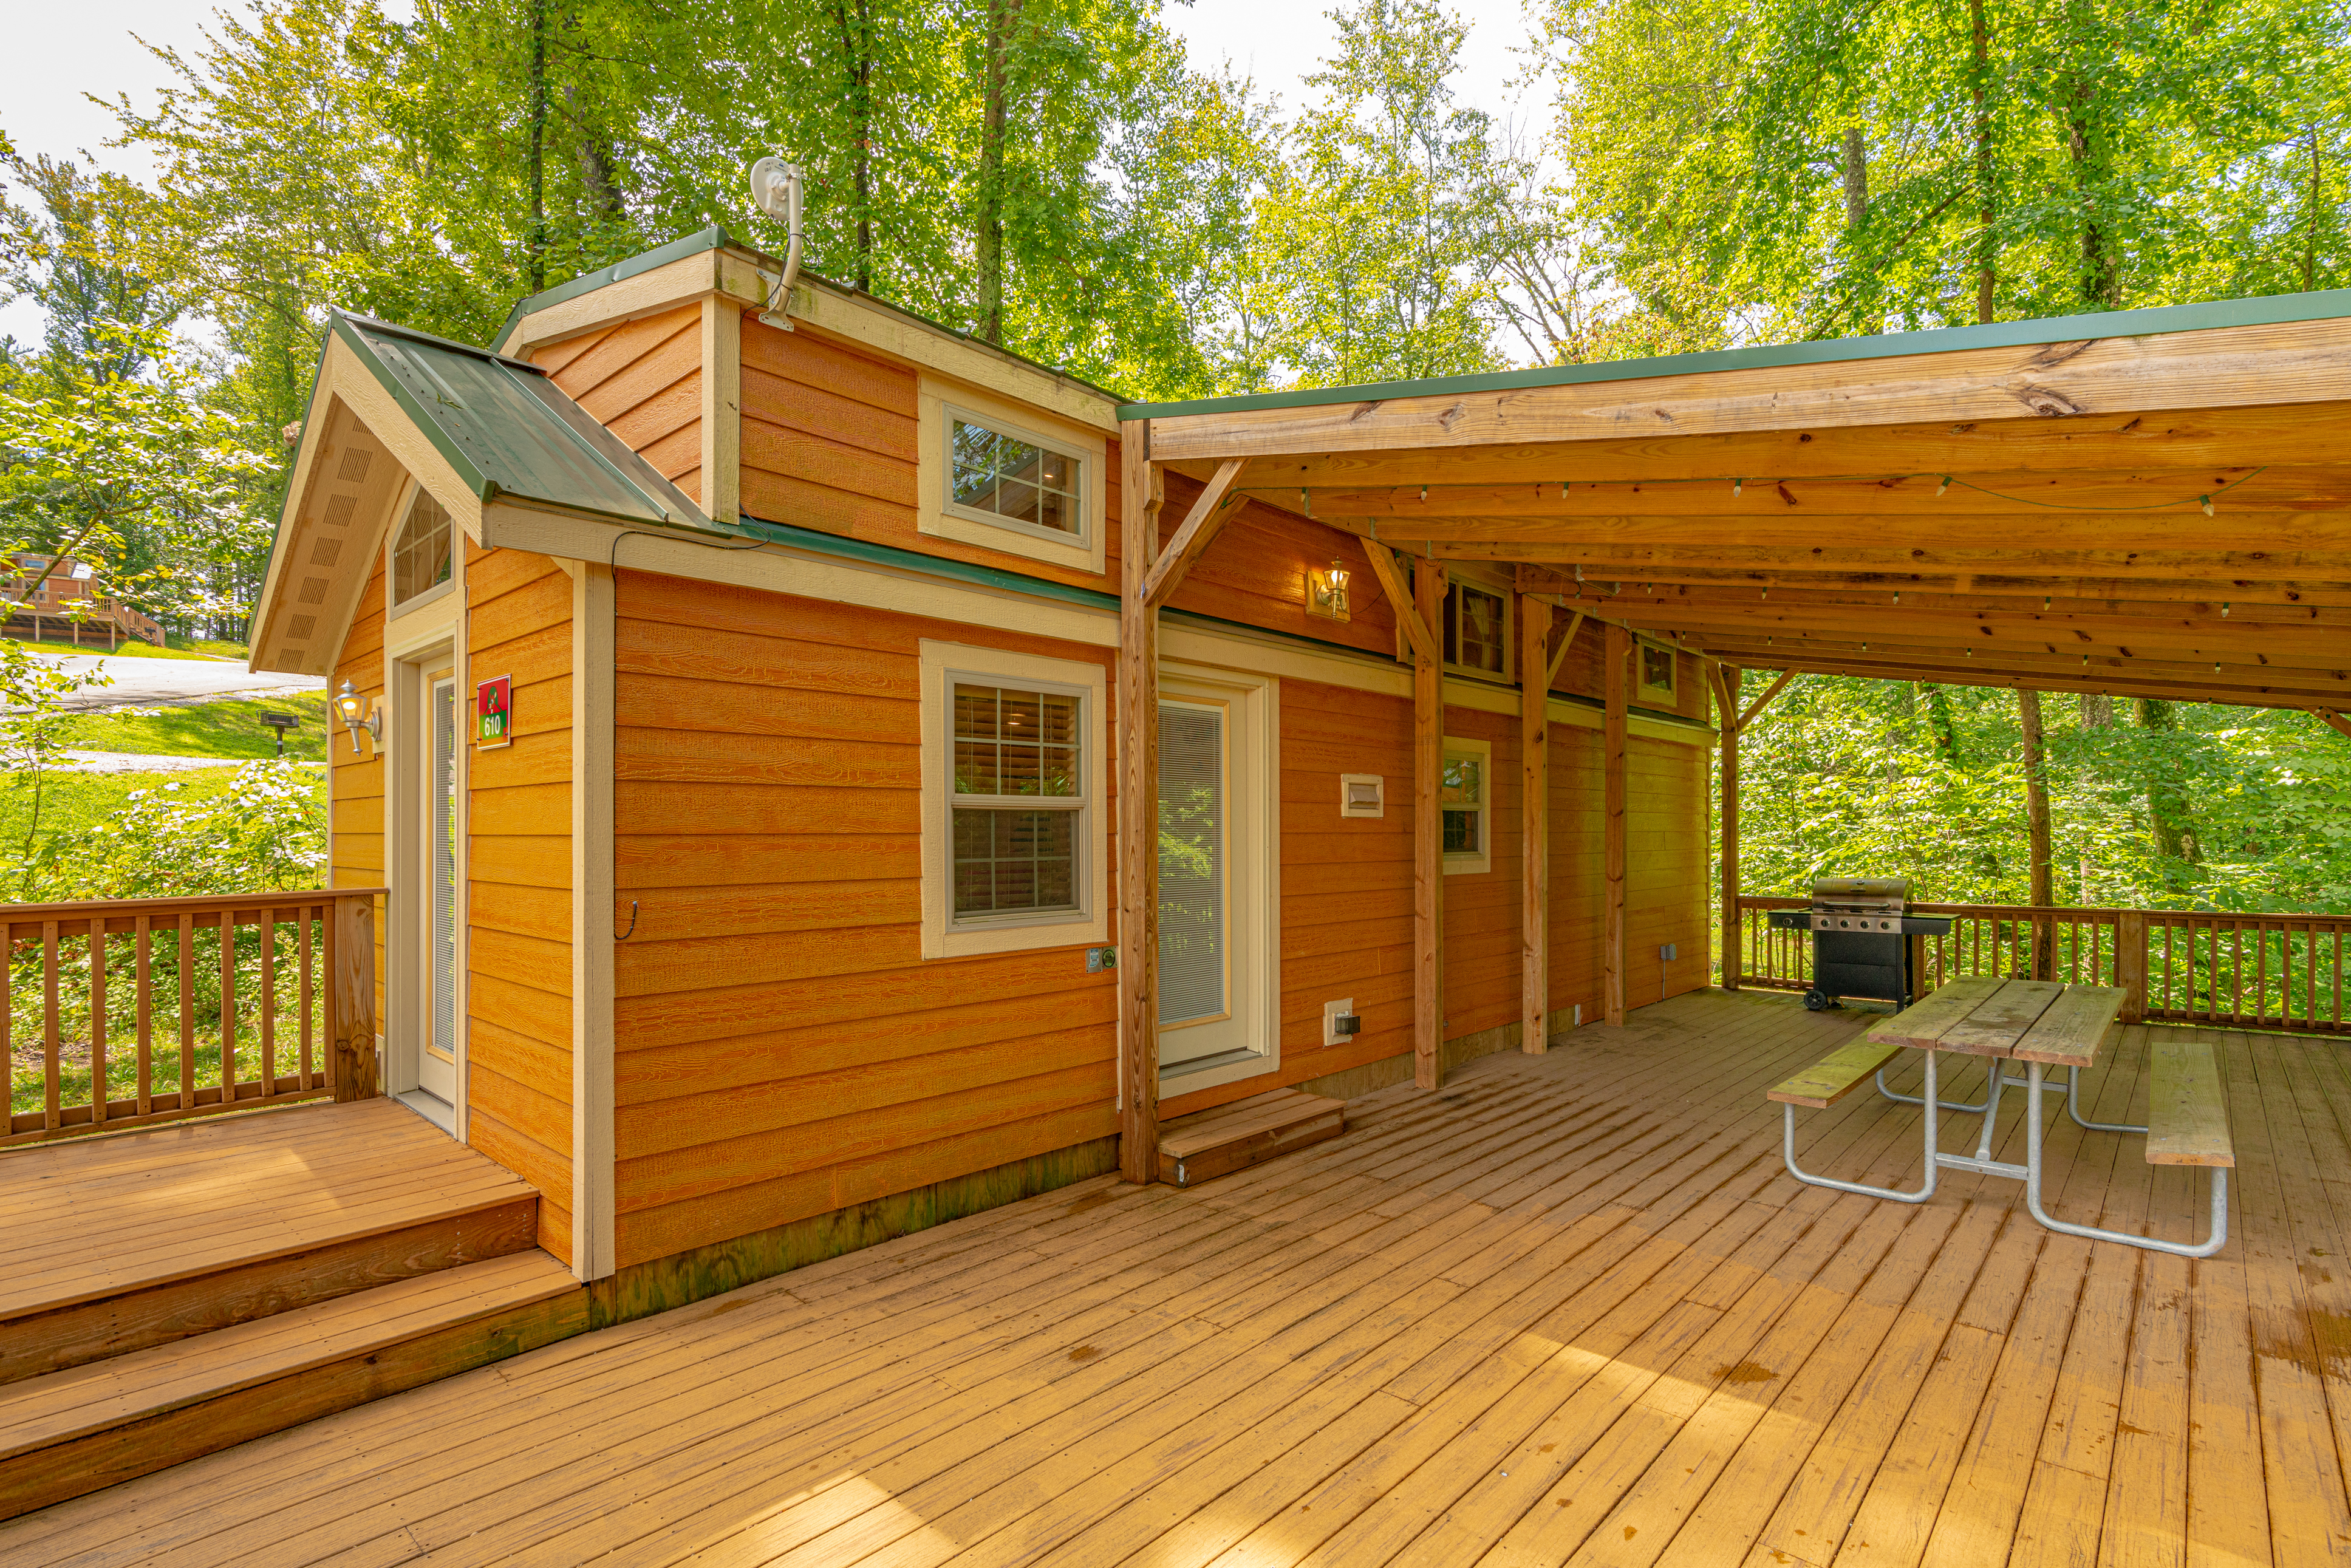 Christmas Cabin with large deck at Lake Rudolph Campground & RV Resort in Santa Claus, Indiana